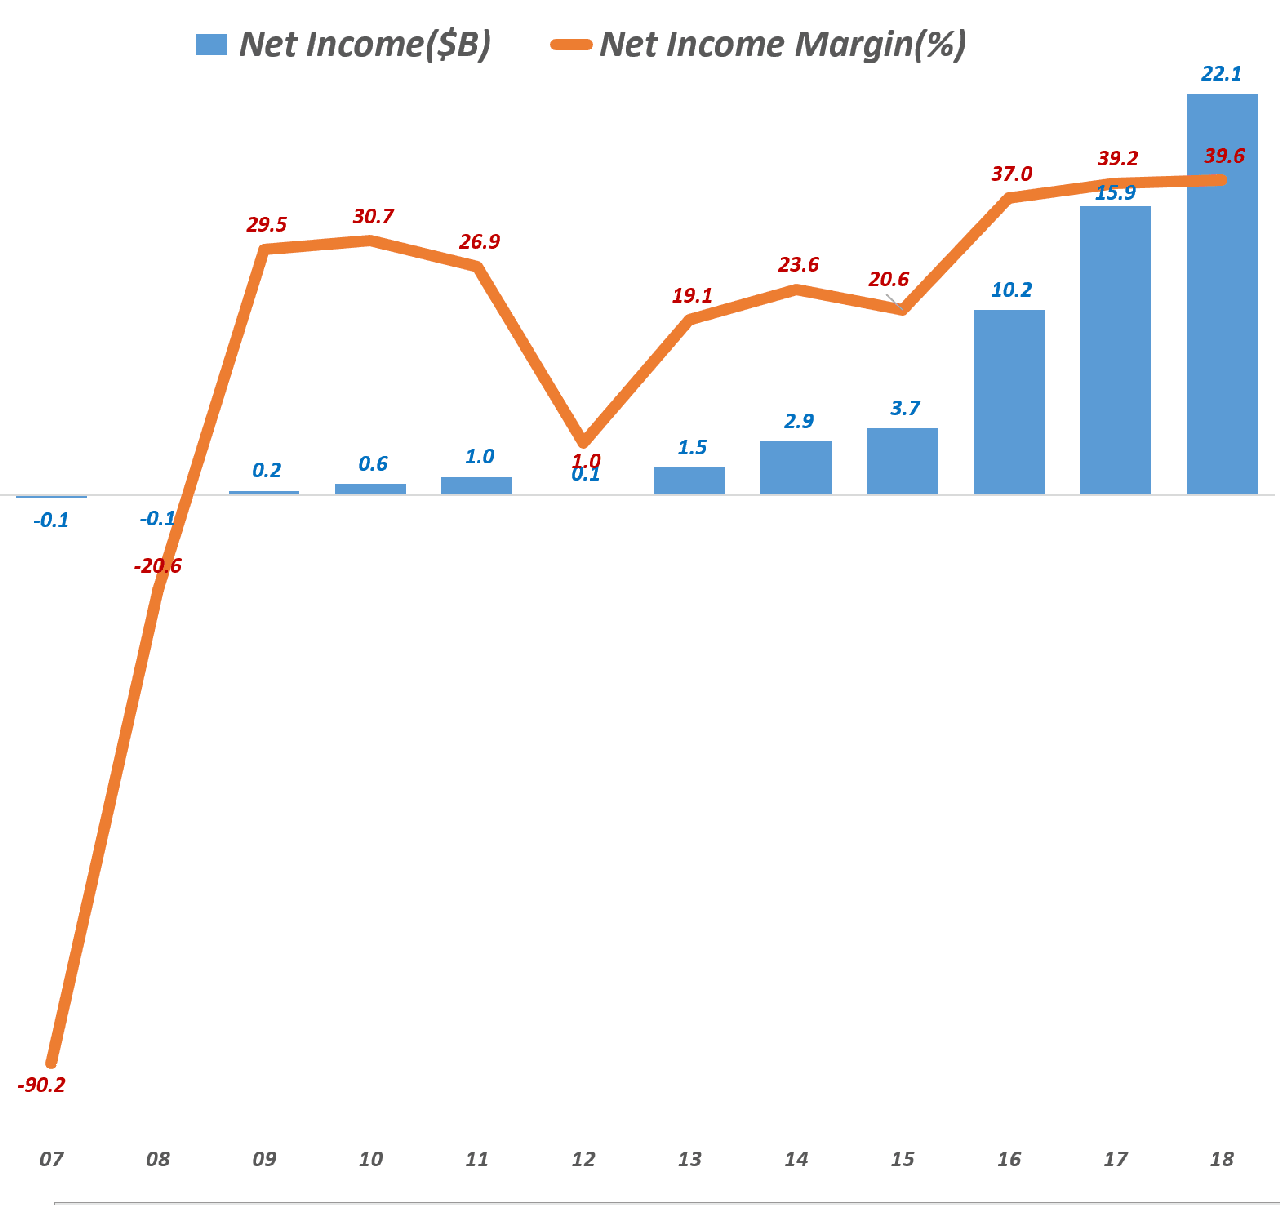 페이스북 연도별 순이익 추이(2007년 ~ 2018년), Facebook yearly Net Income trend, Data - invest.fb.com, Graph by Happist